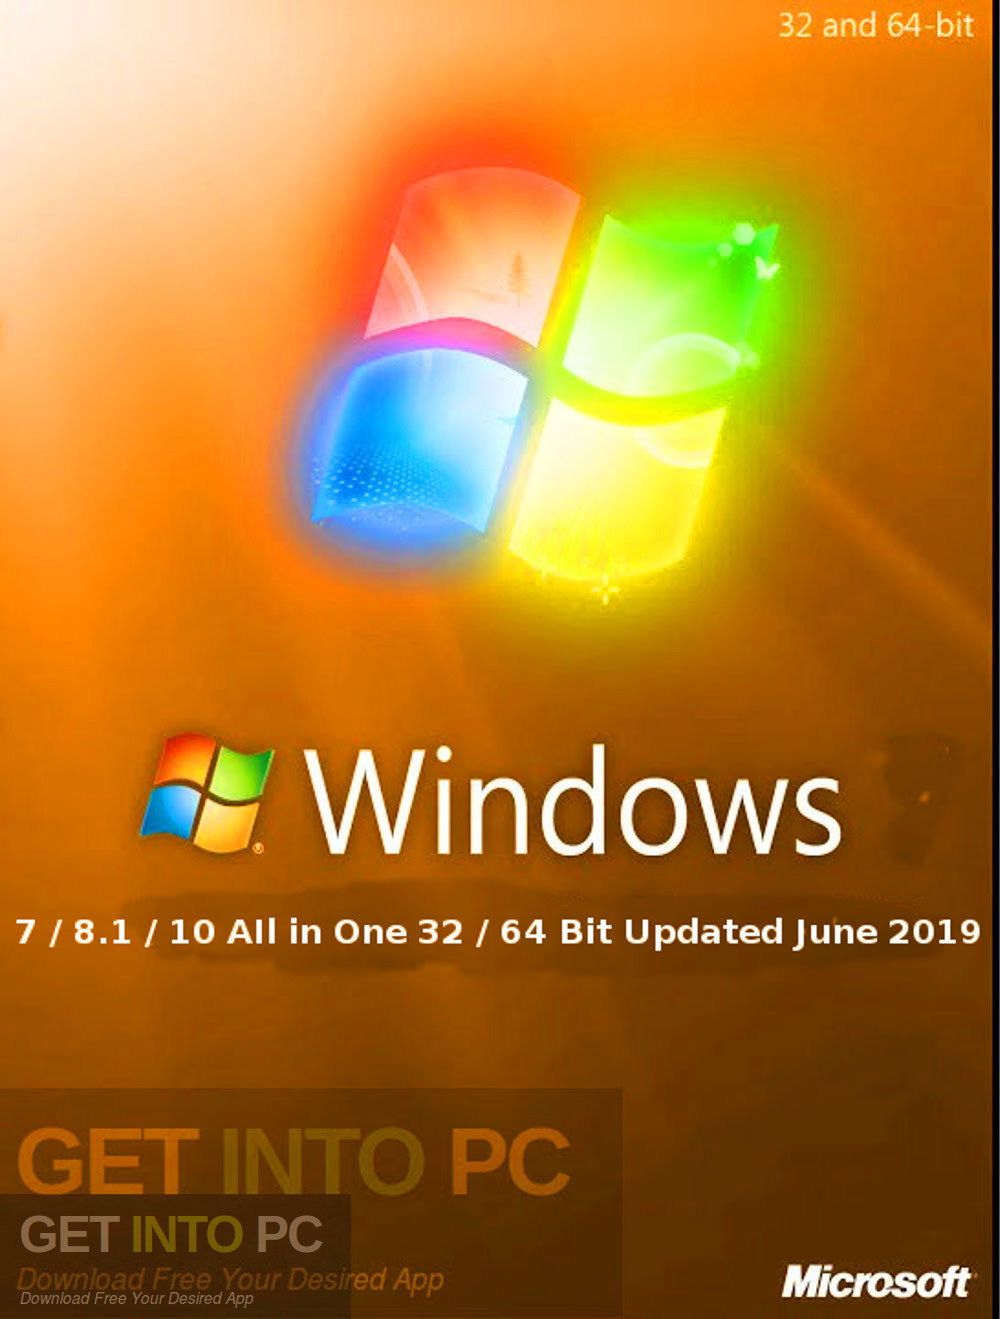 Windows 7 8.1 10 AIl in One 32 64 Bit Updated June 2019 Free Download-GetintoPC.com